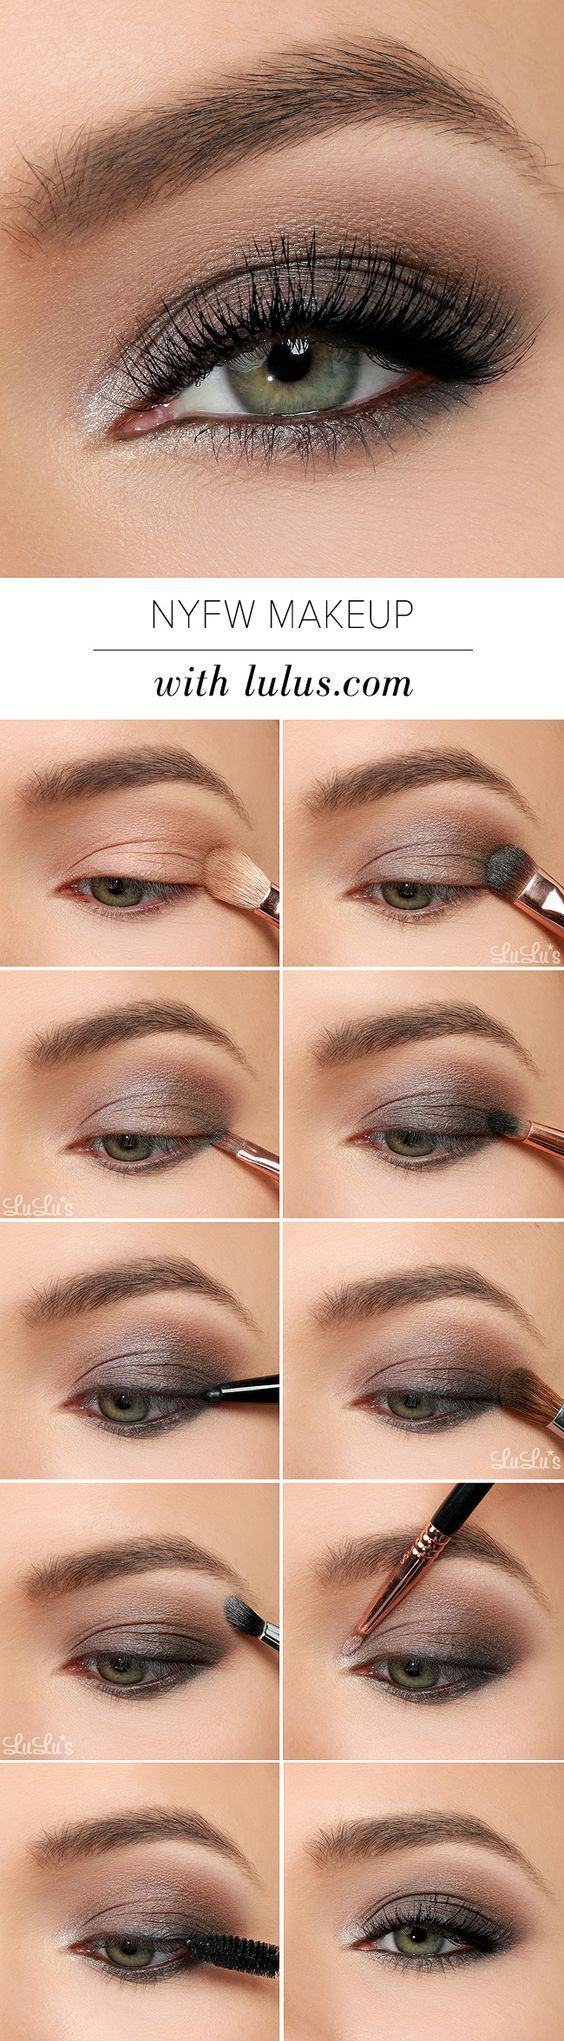 How to NYFW inspired Eye Make-up tutorial. Grayish & Brown Eye shadow for dull d...